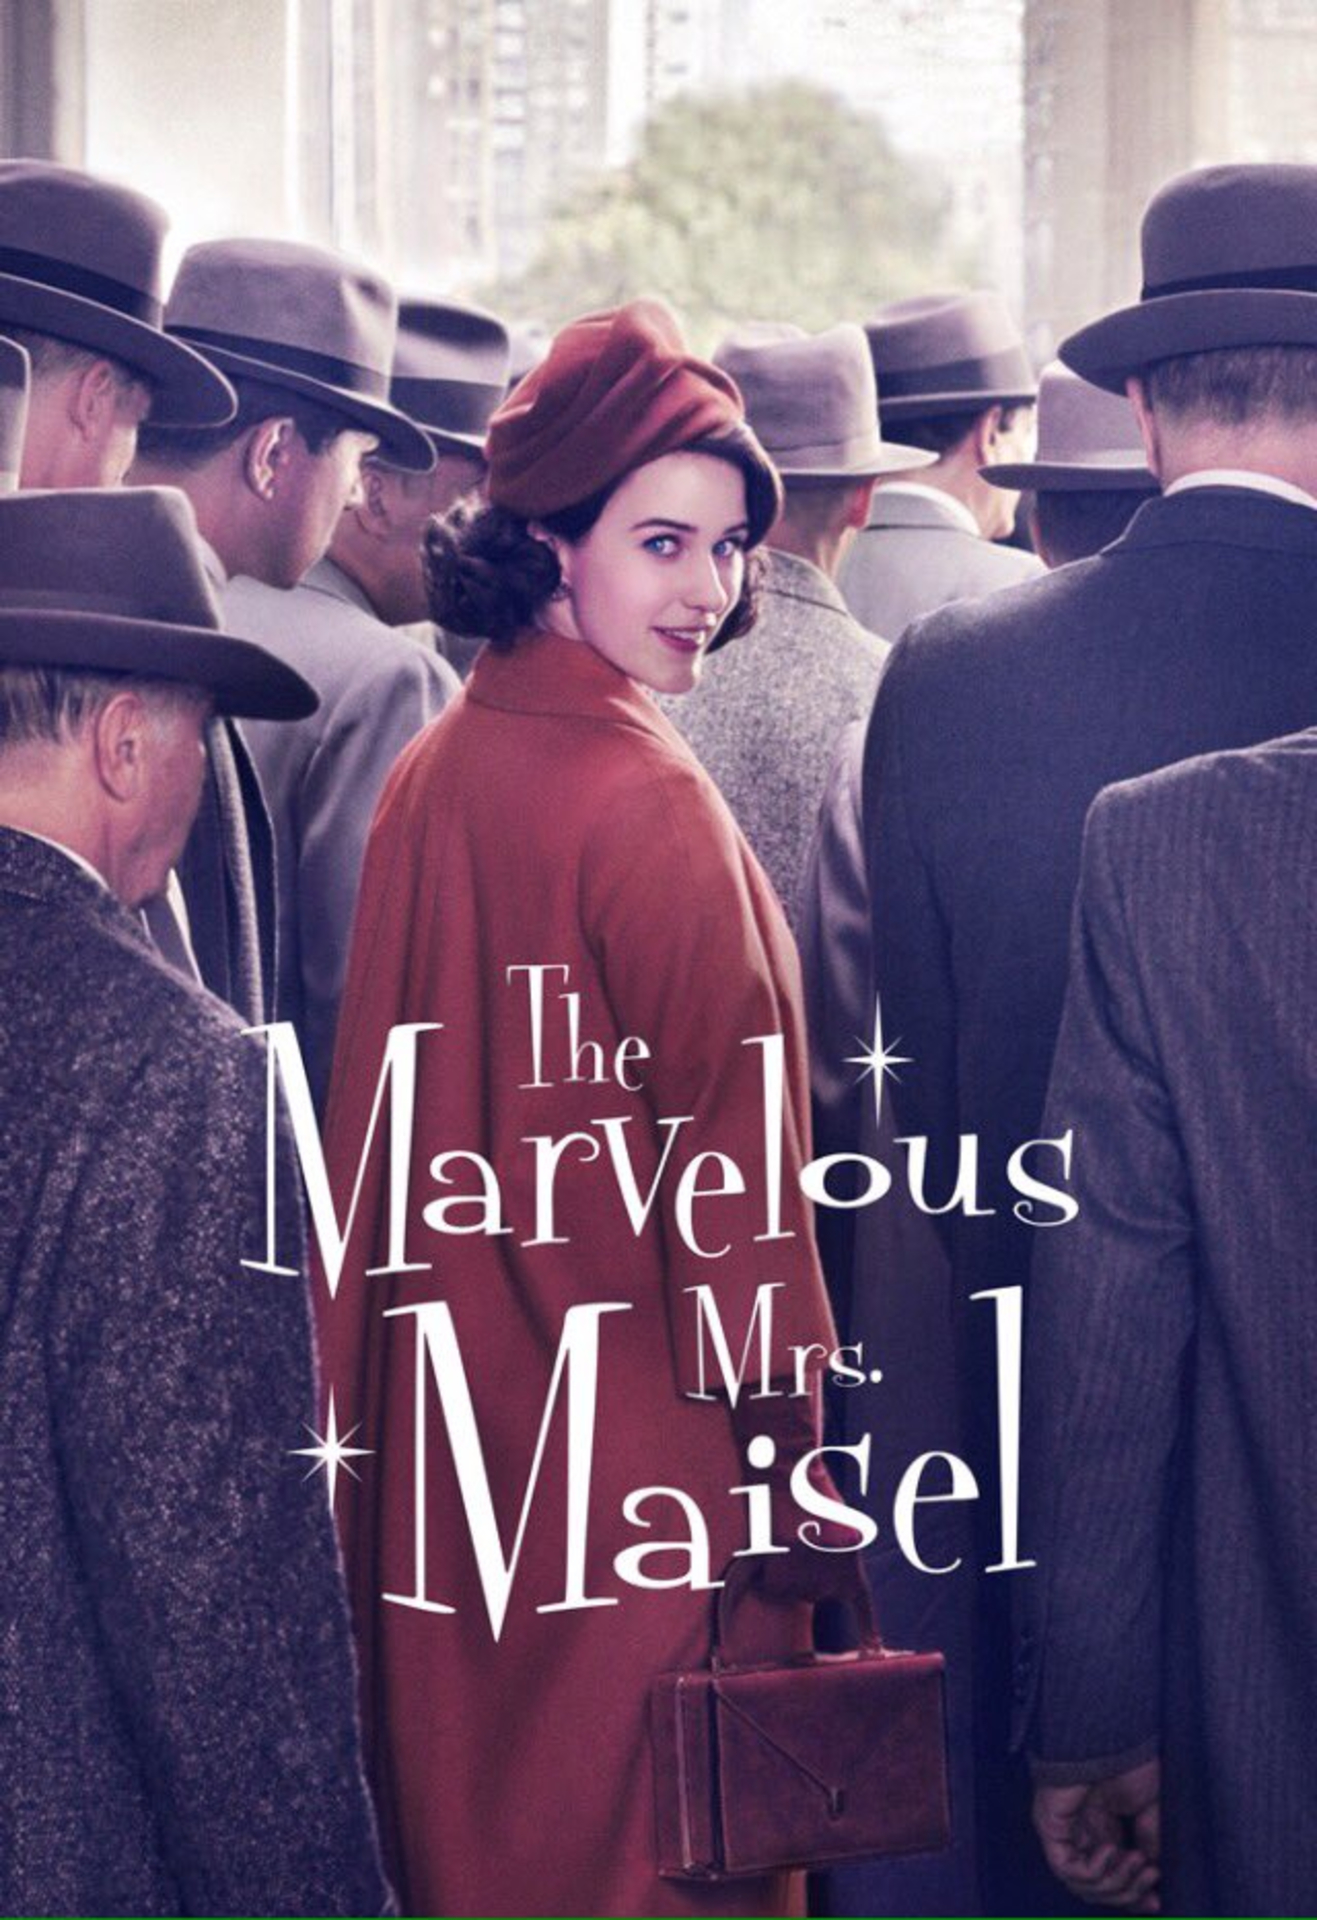 The Marvelous Mrs. Maisel: Definitely Binge Worthy image